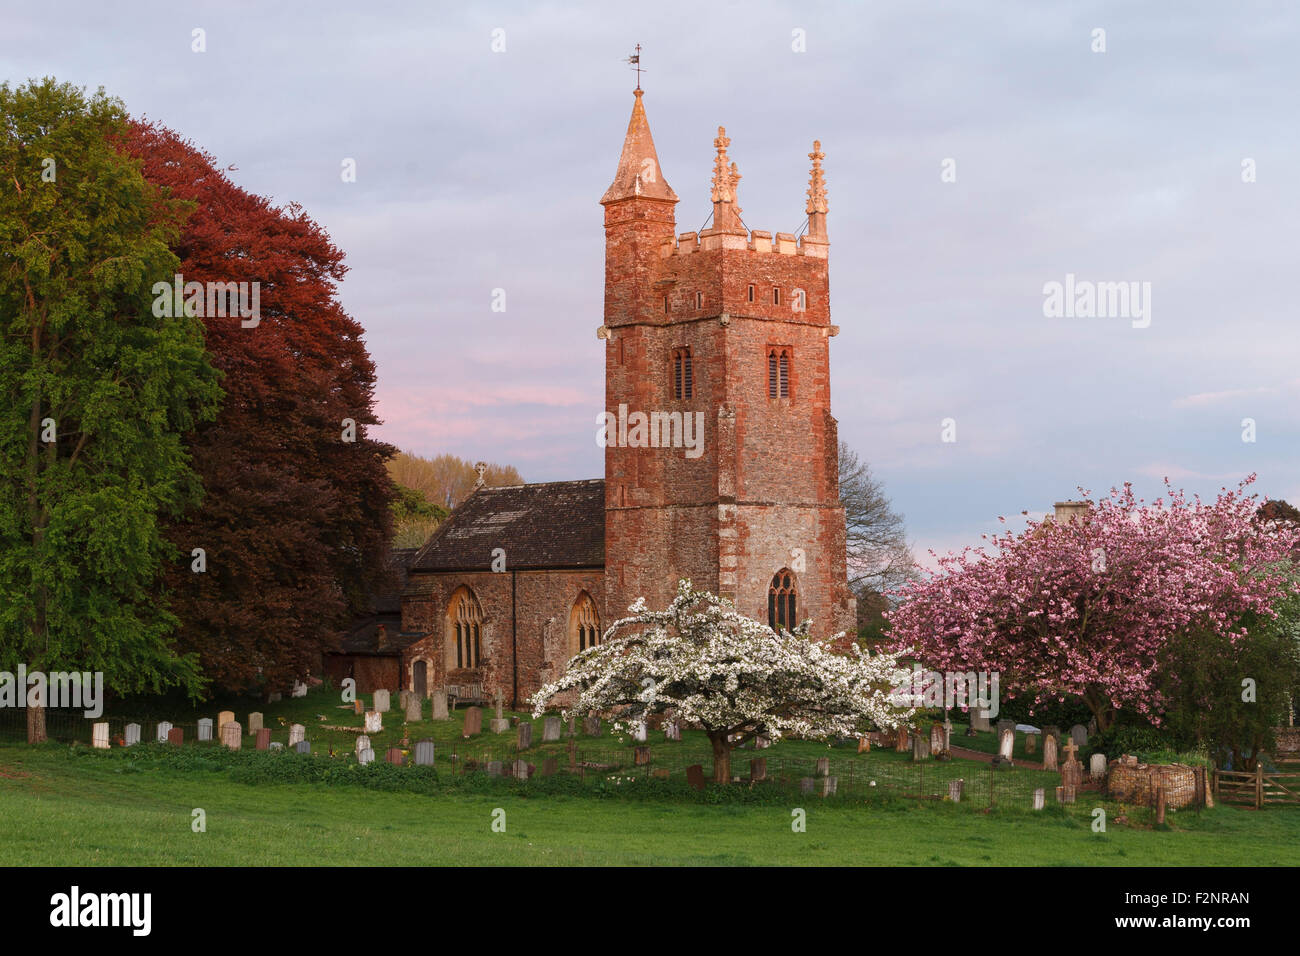 St Thomas of Canterbury church at Cothelstone. The church is situated just behind Cothelstone manor. Stock Photo